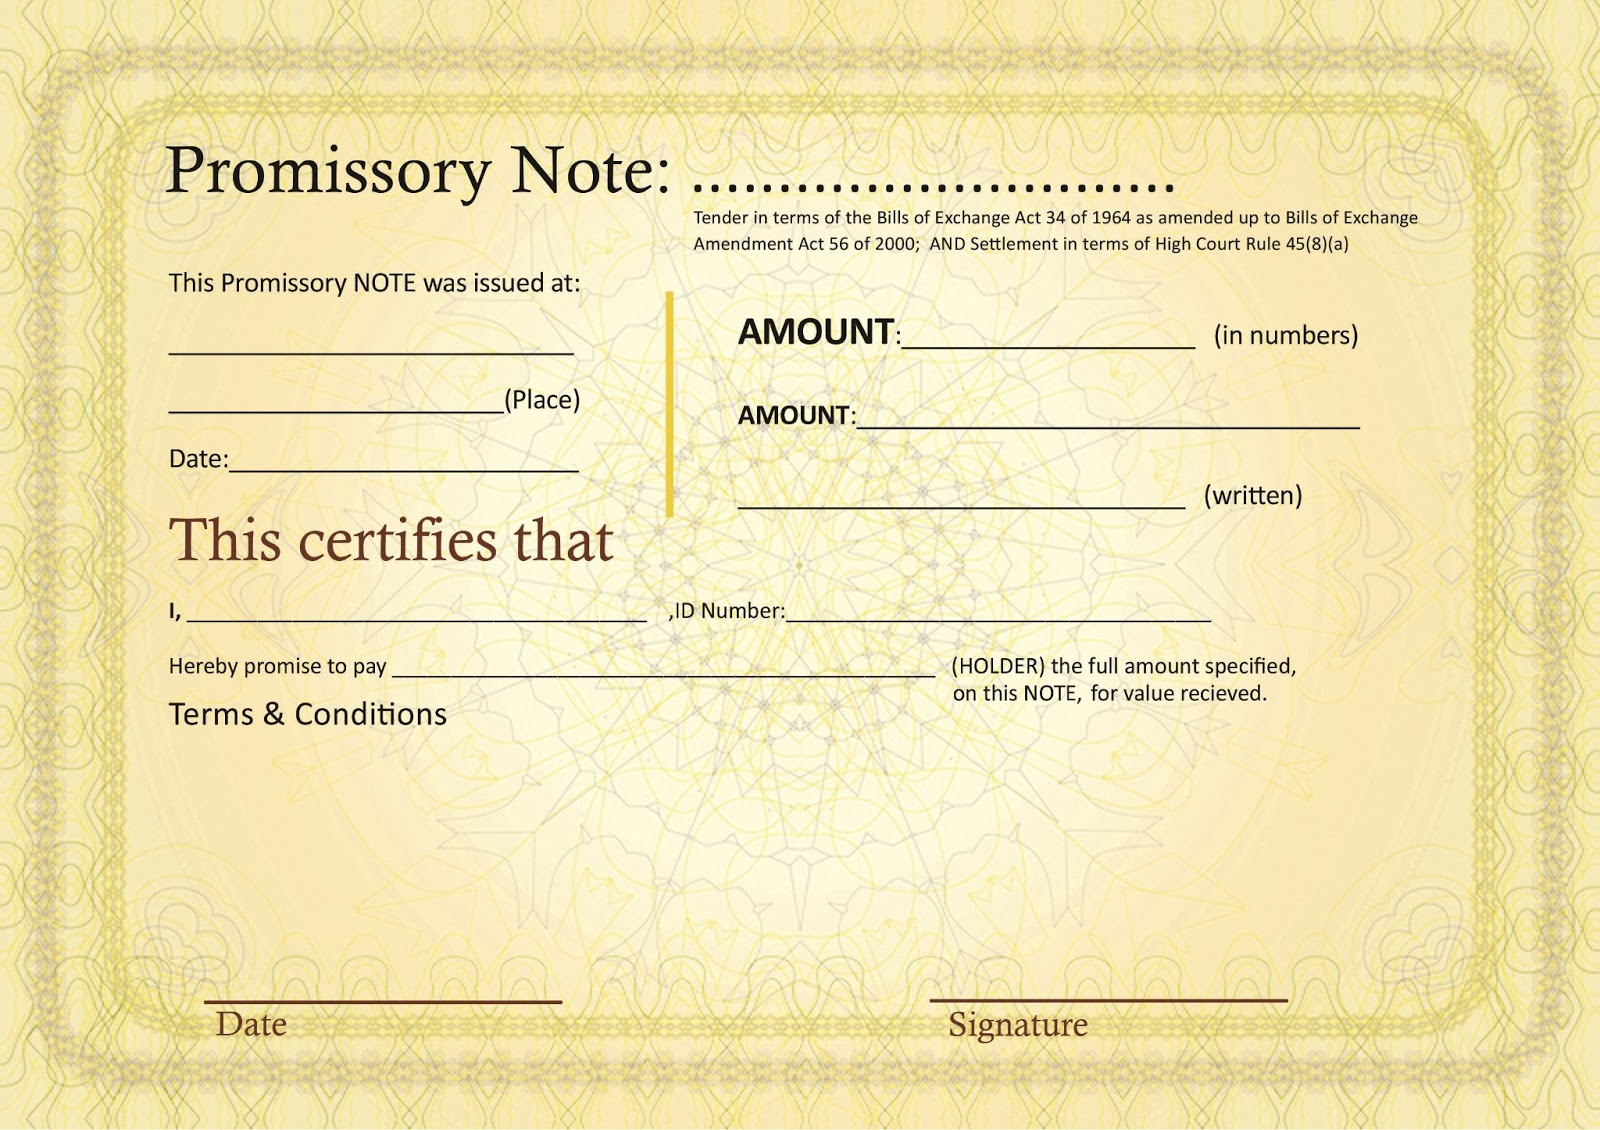 How To Deal With The Sheriff U2013 Protect Your Property (UBUNTU, So Africa)  Promissory Note Blank Form